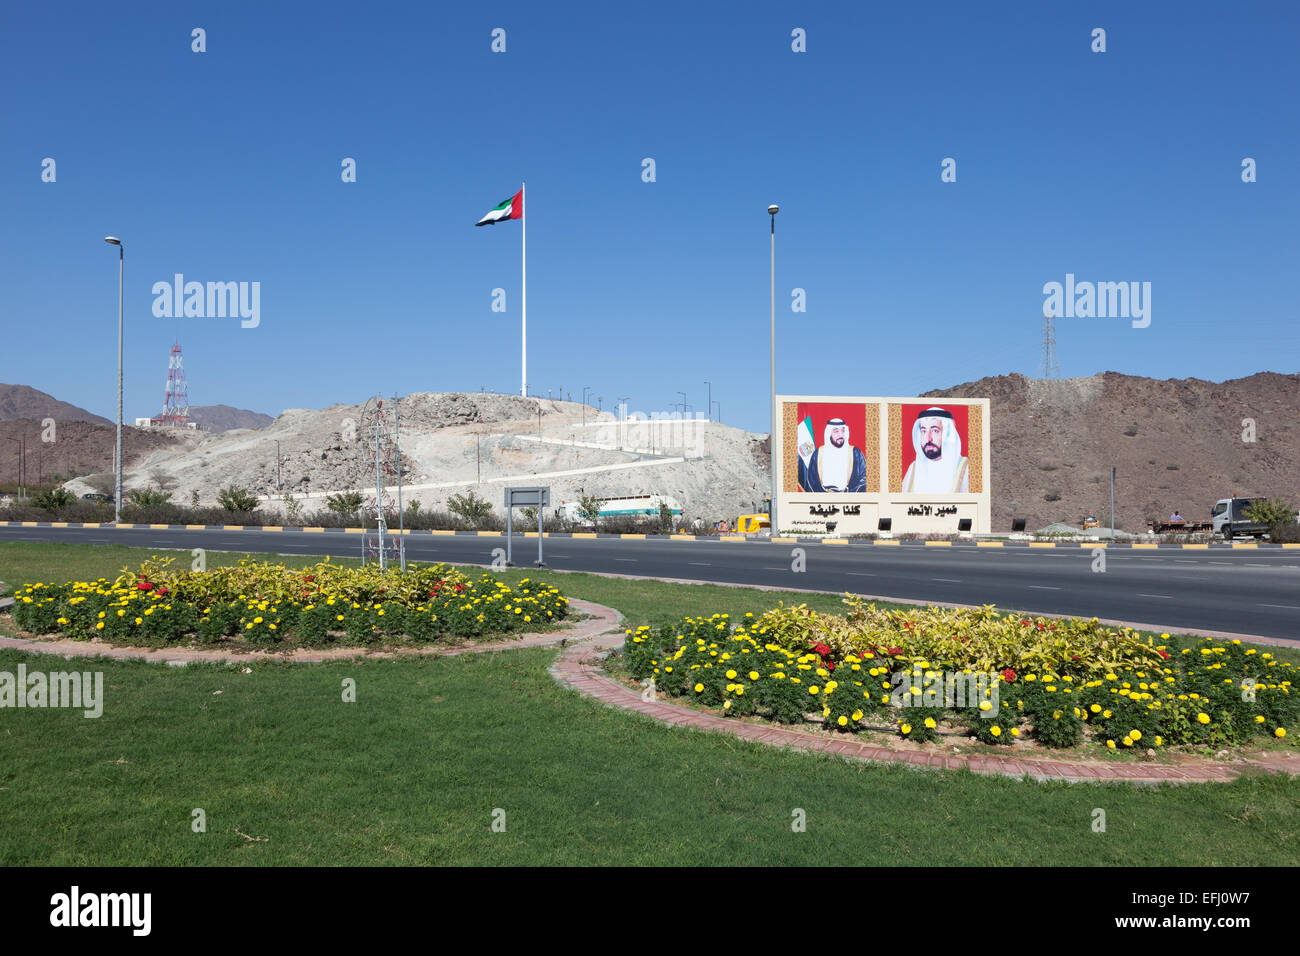 Roundabout in Fujairah with national flag and portraits of the rulers of the UAE - Stock Image